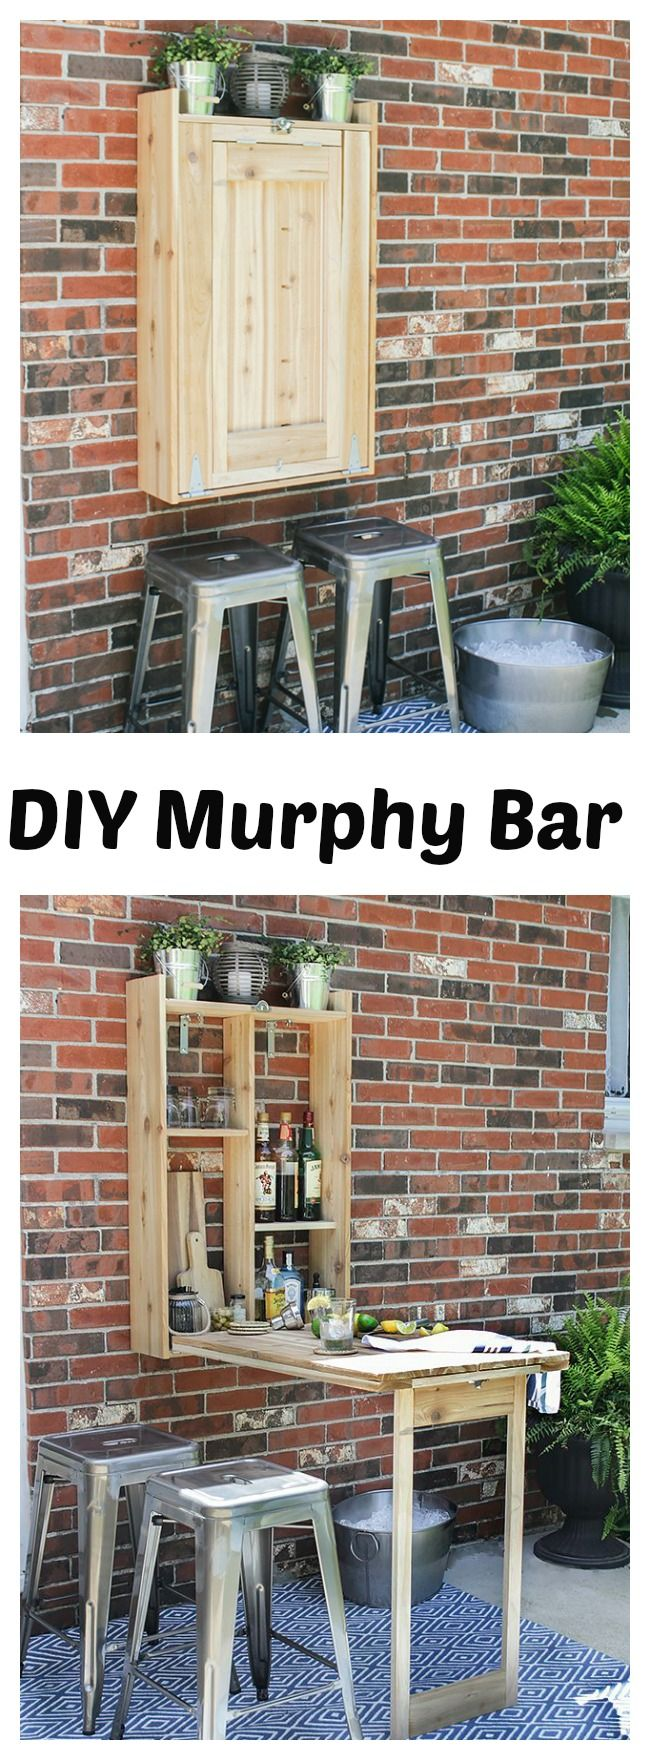 Diy Cool Fold Down Outdoor Murphy Bar Very Creative Idea Diy Outdoor Bar Backyard Bar Diy Outdoor